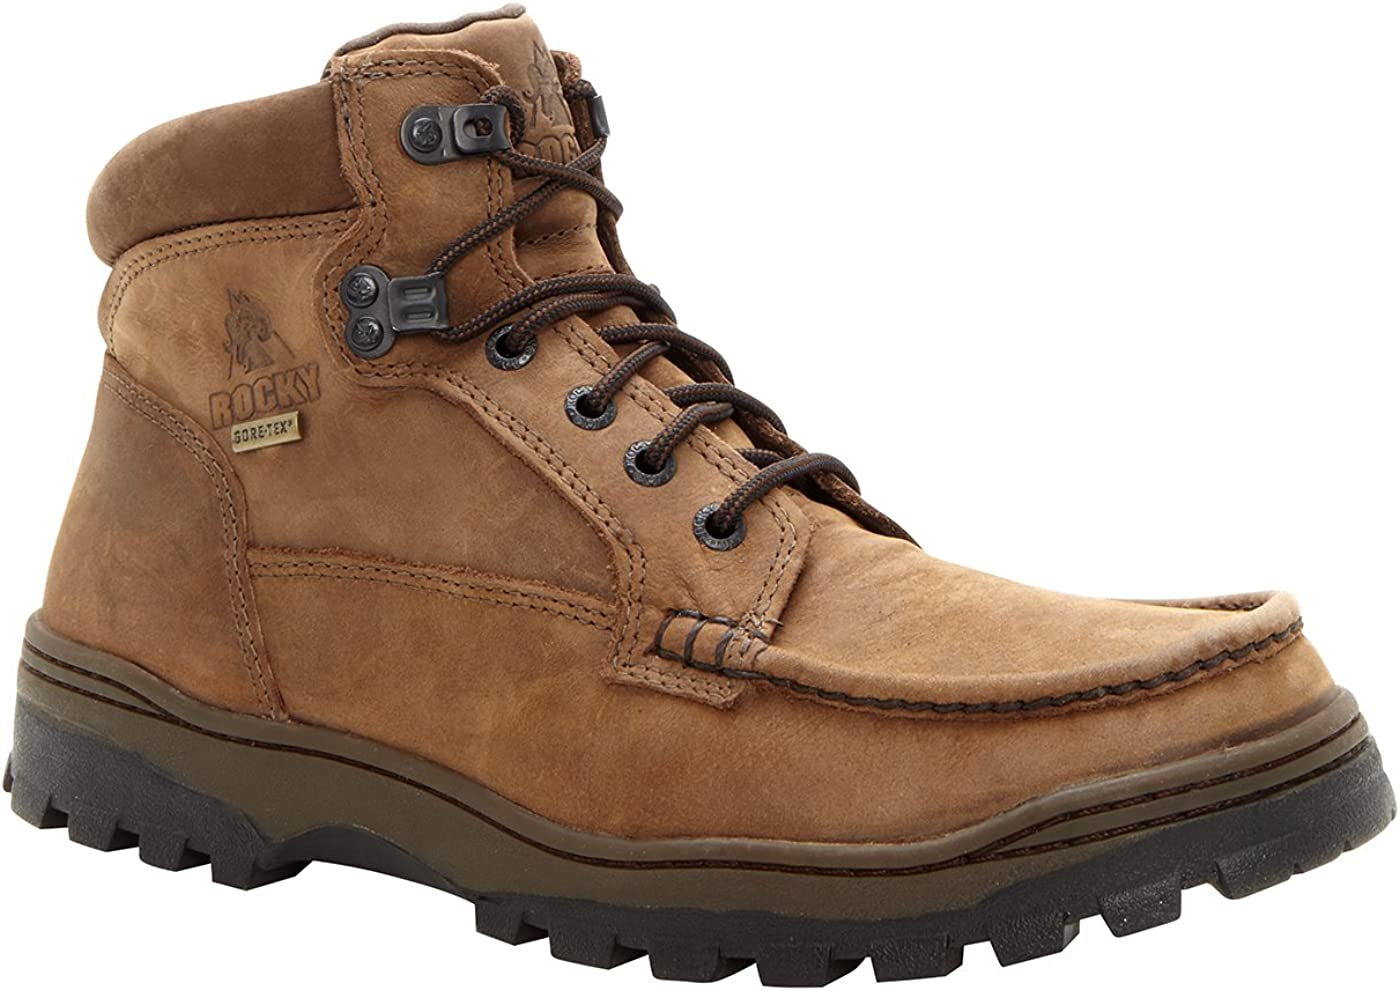 Rocky Men's Outback Gore-tex Boots-8723 New product Nippon regular agency type Moc-Toe Field WP